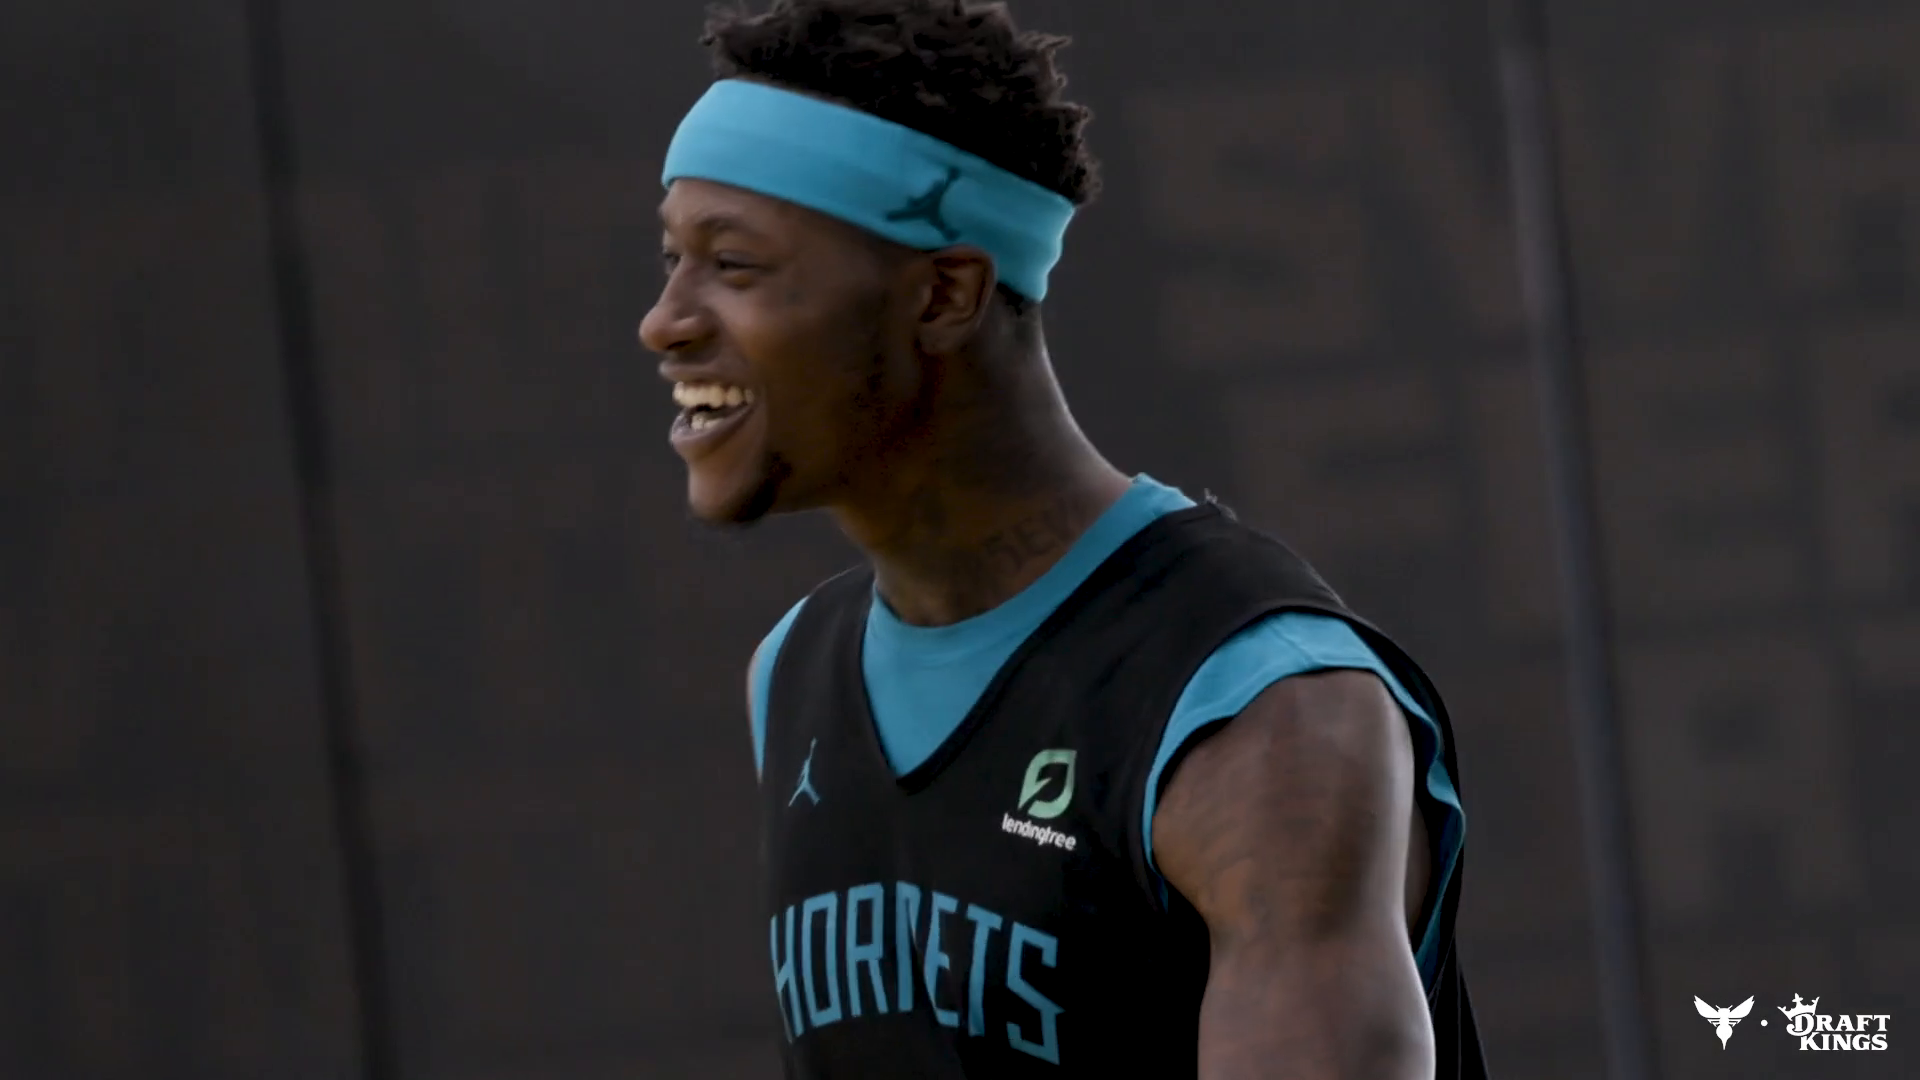 2021 Training Camp presented by DraftKings Wraps in Charlotte